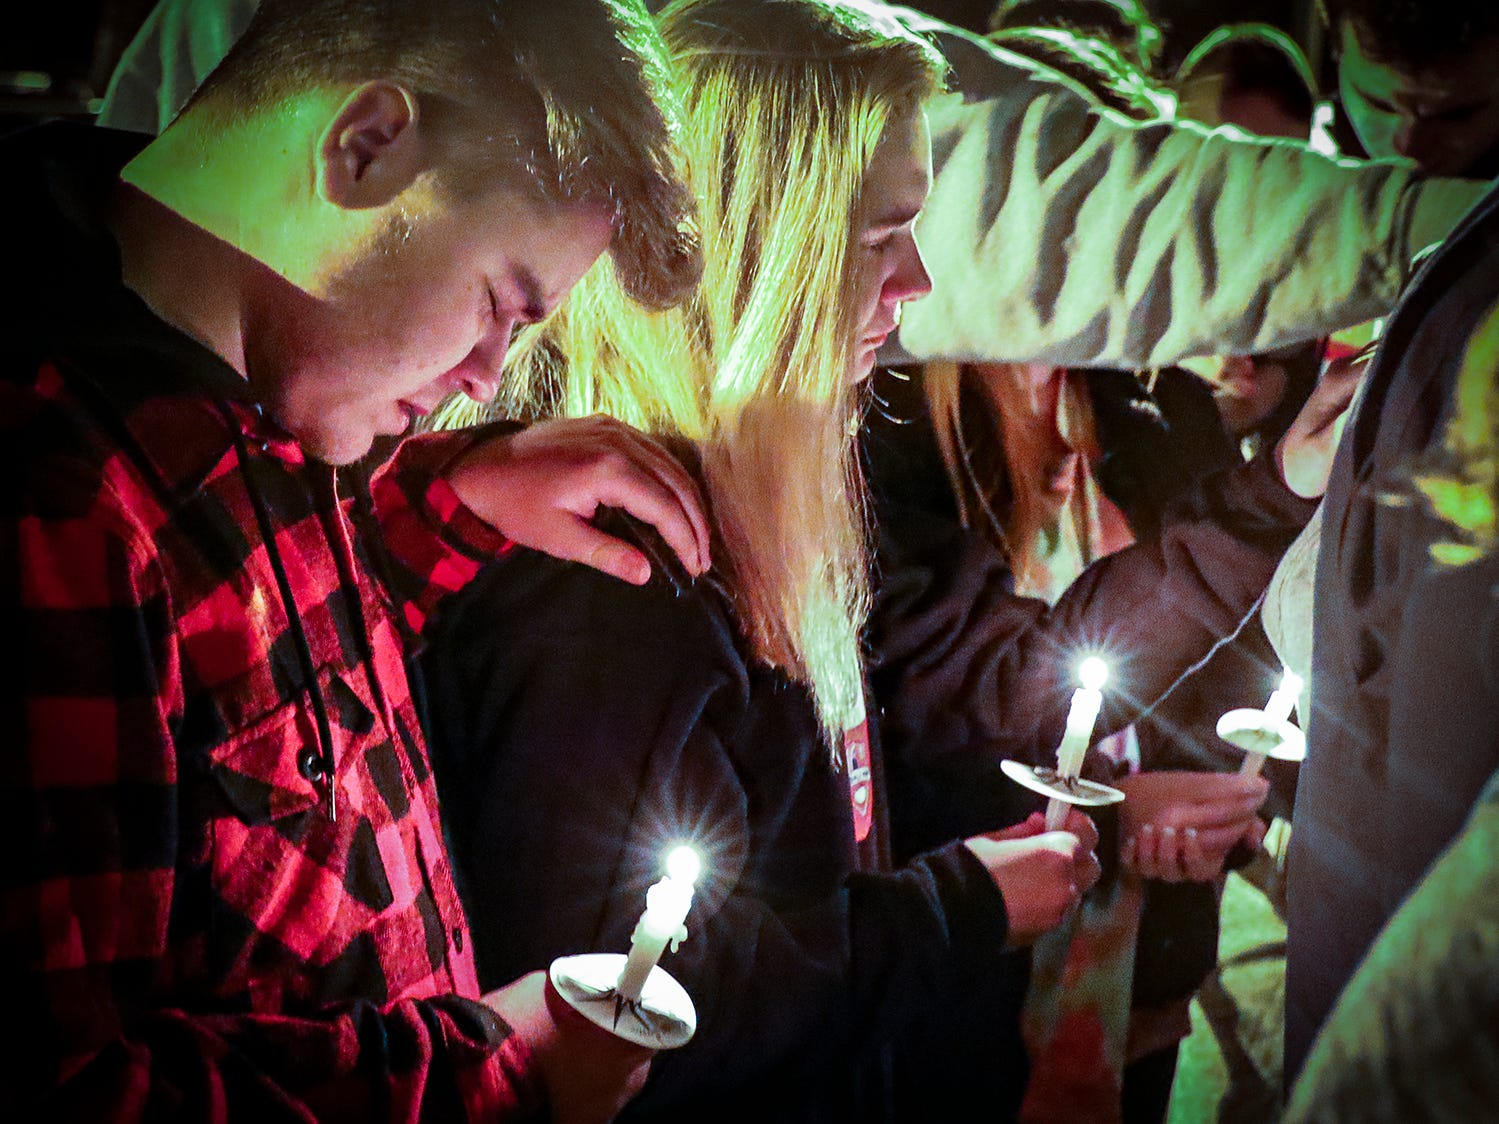 A vigil was held at Eagleville School Tuesday, Nov. 6, 2018 in memory of Angie Walker. Walker, 41, was killed during an EF-2 tornado in Christiana, Tenn.